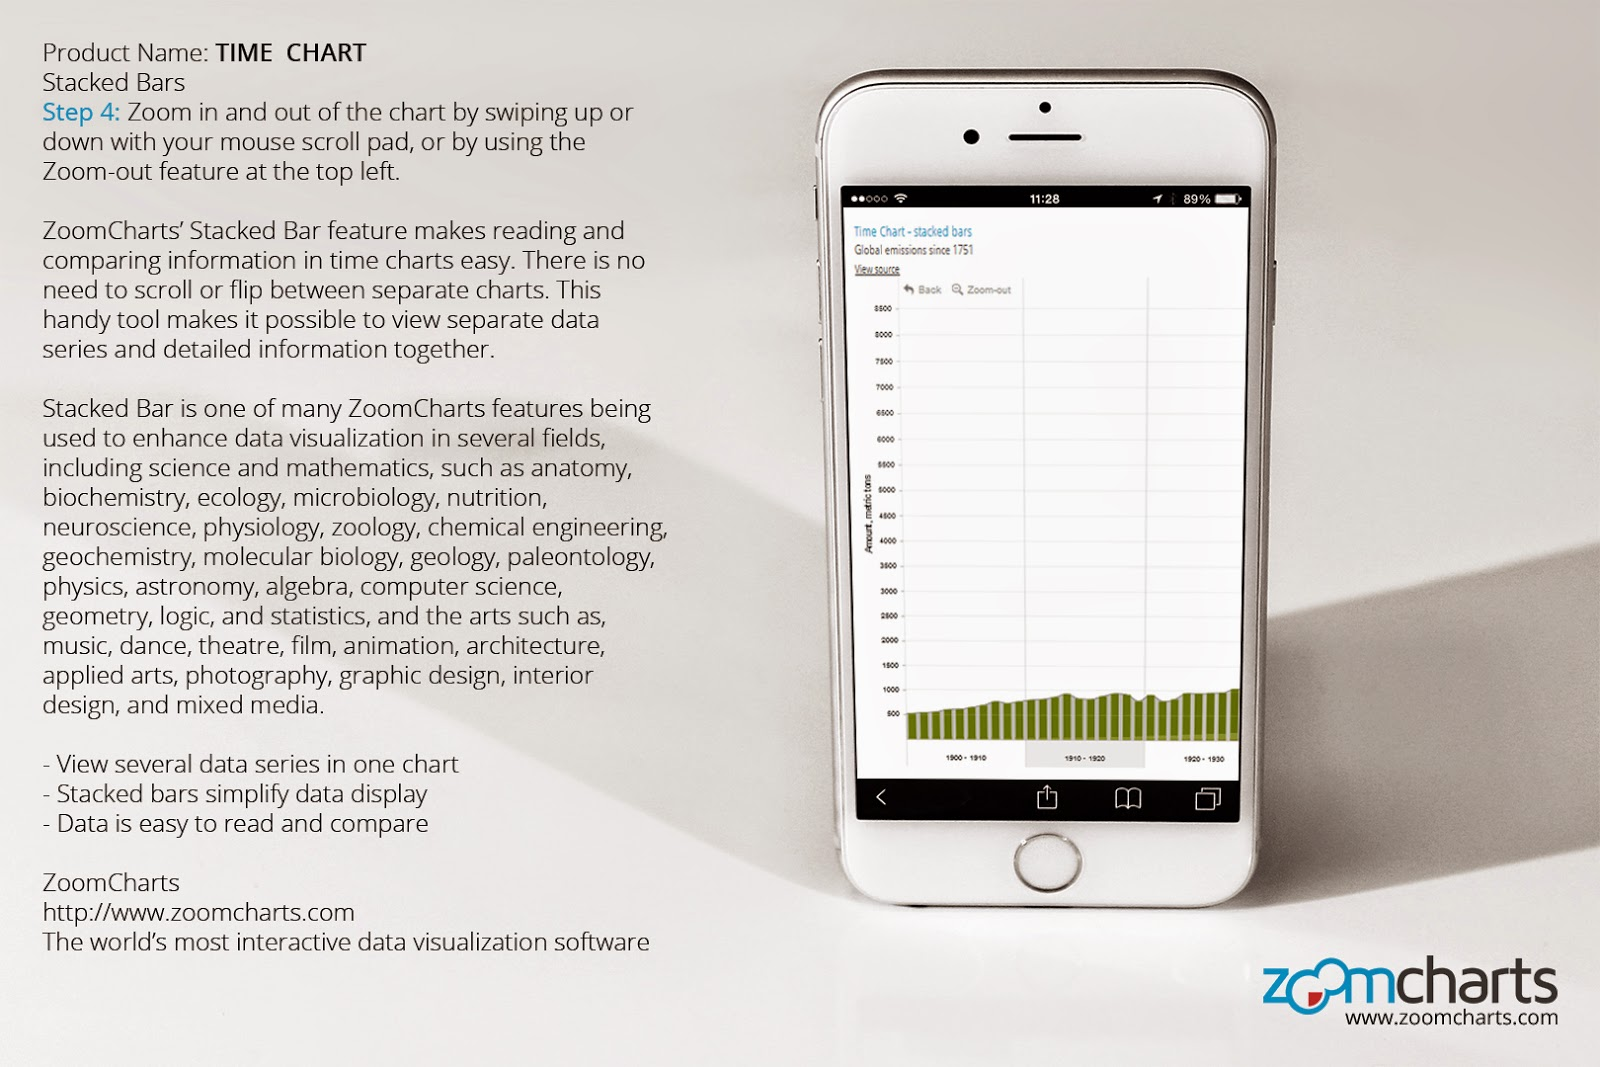 check out zoomcharts products